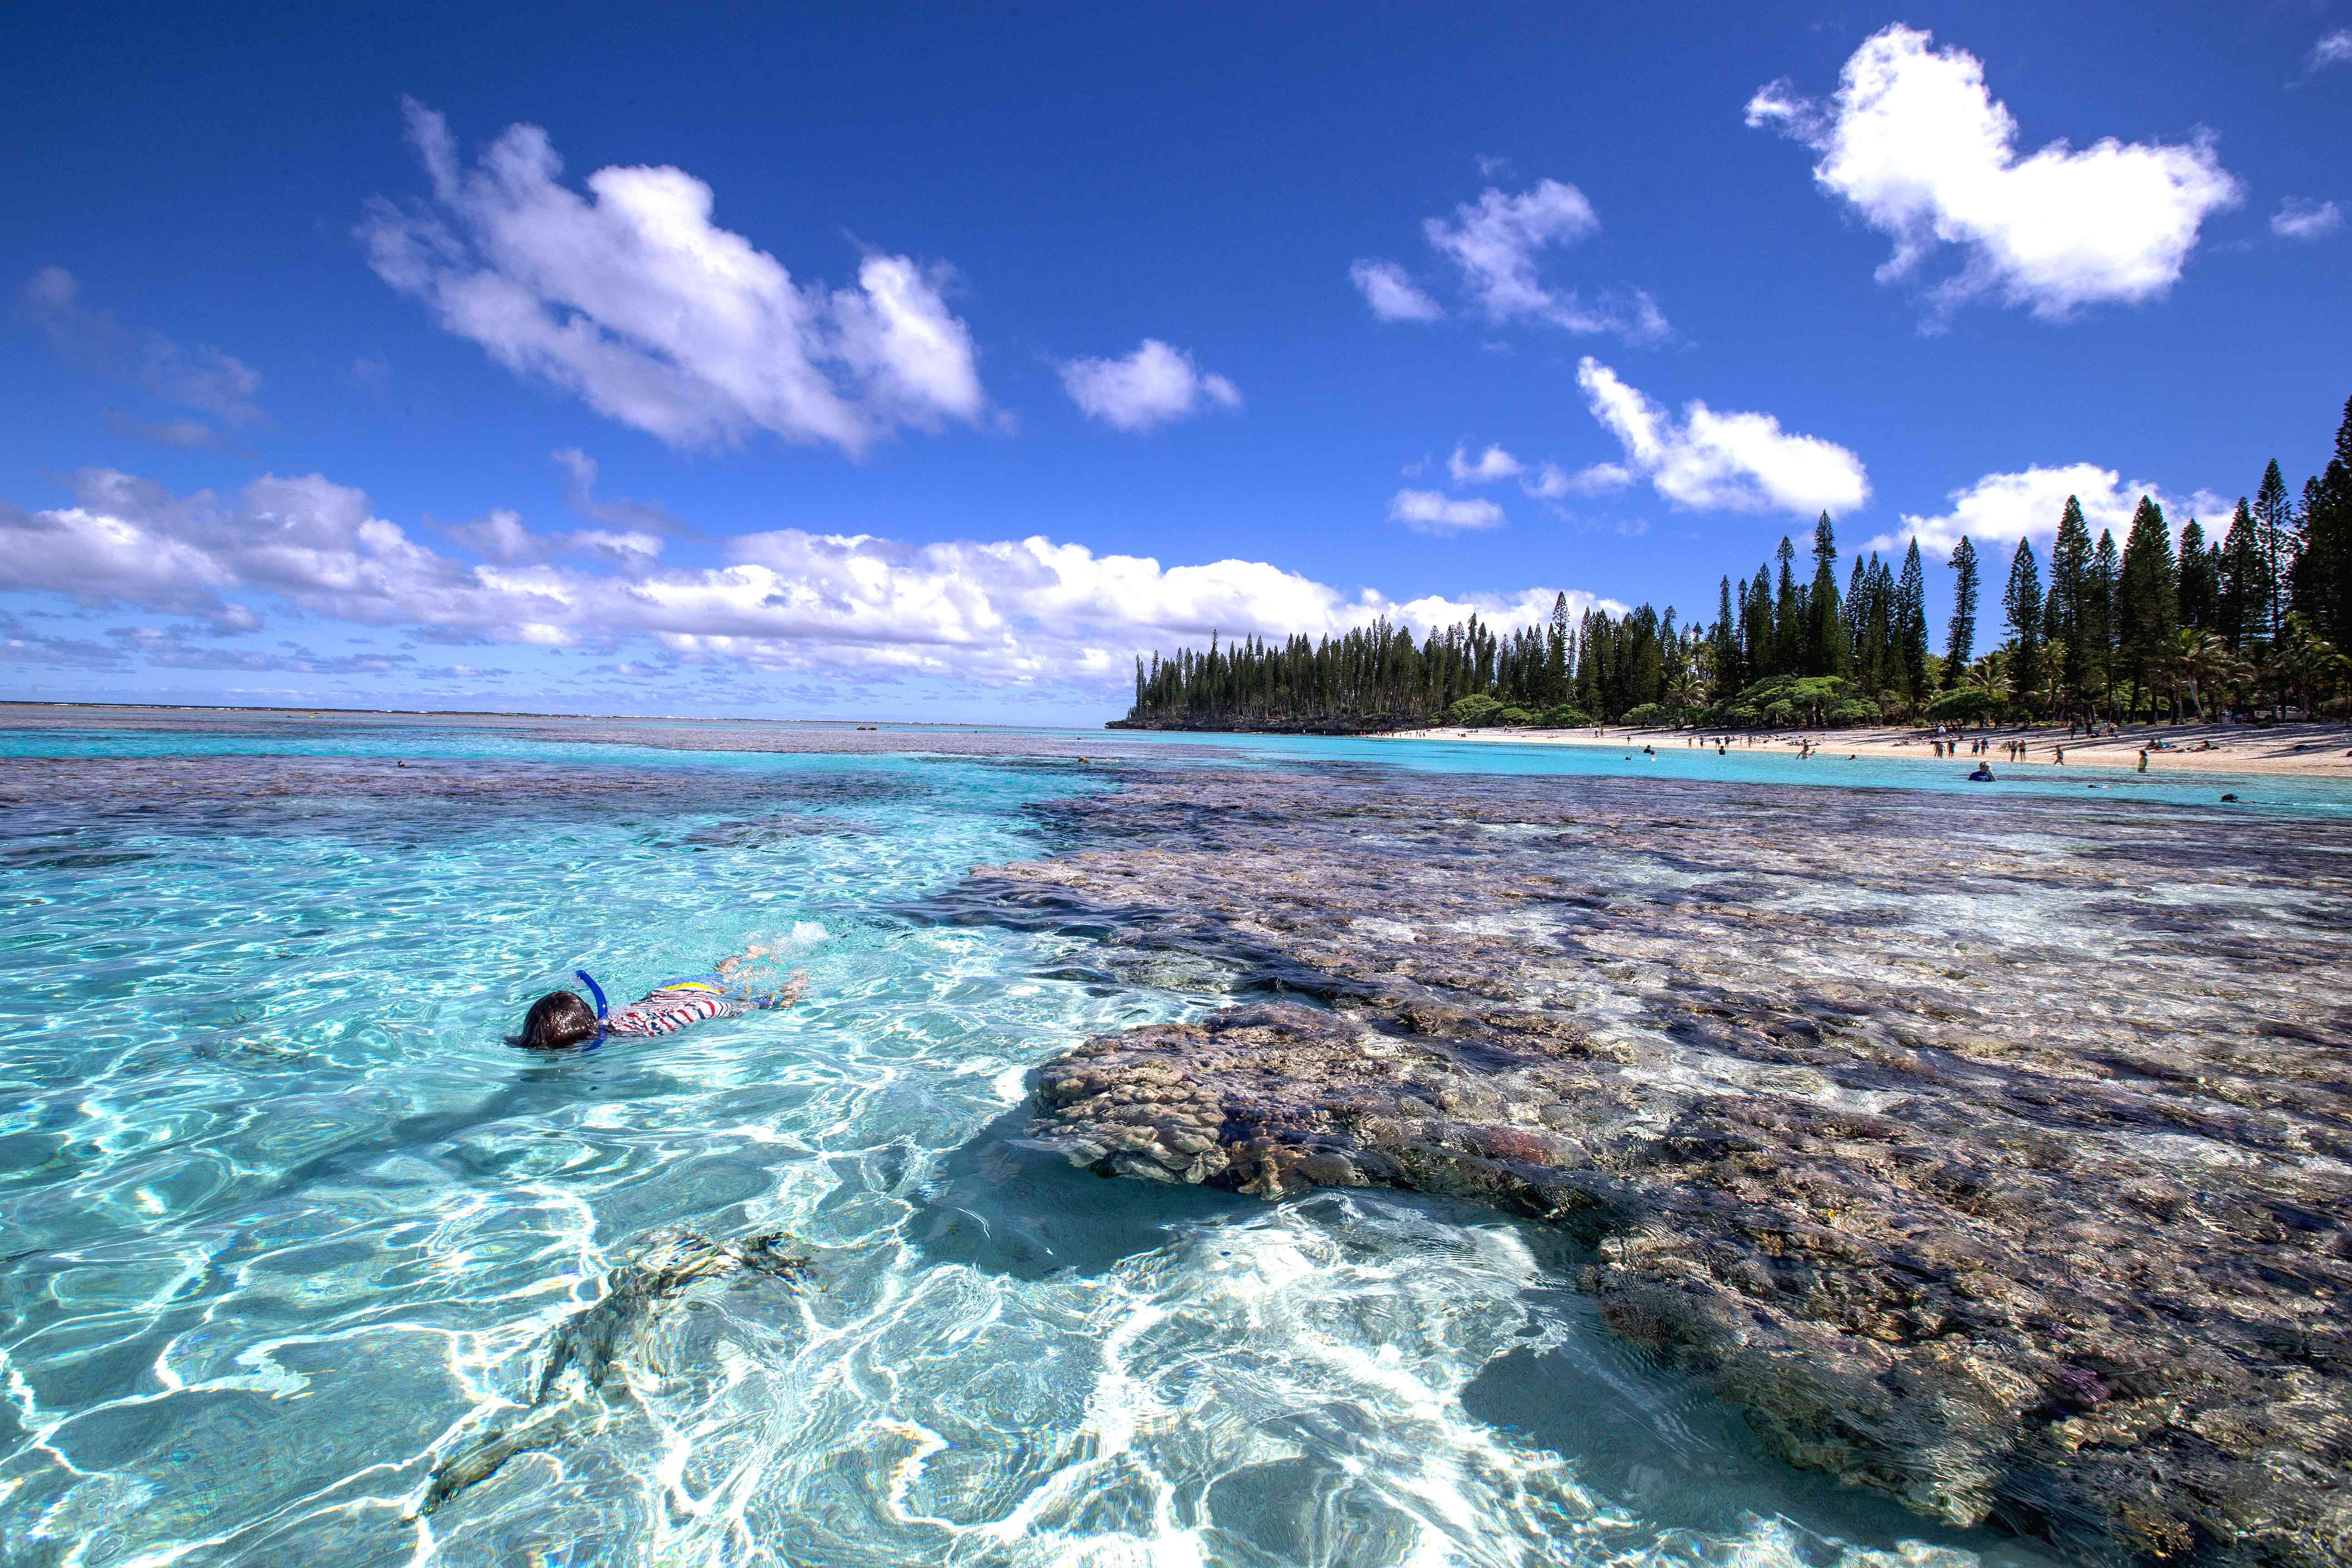 swim-snorkel-yejele-beach-new-caledonia-travelling-with-kids-3